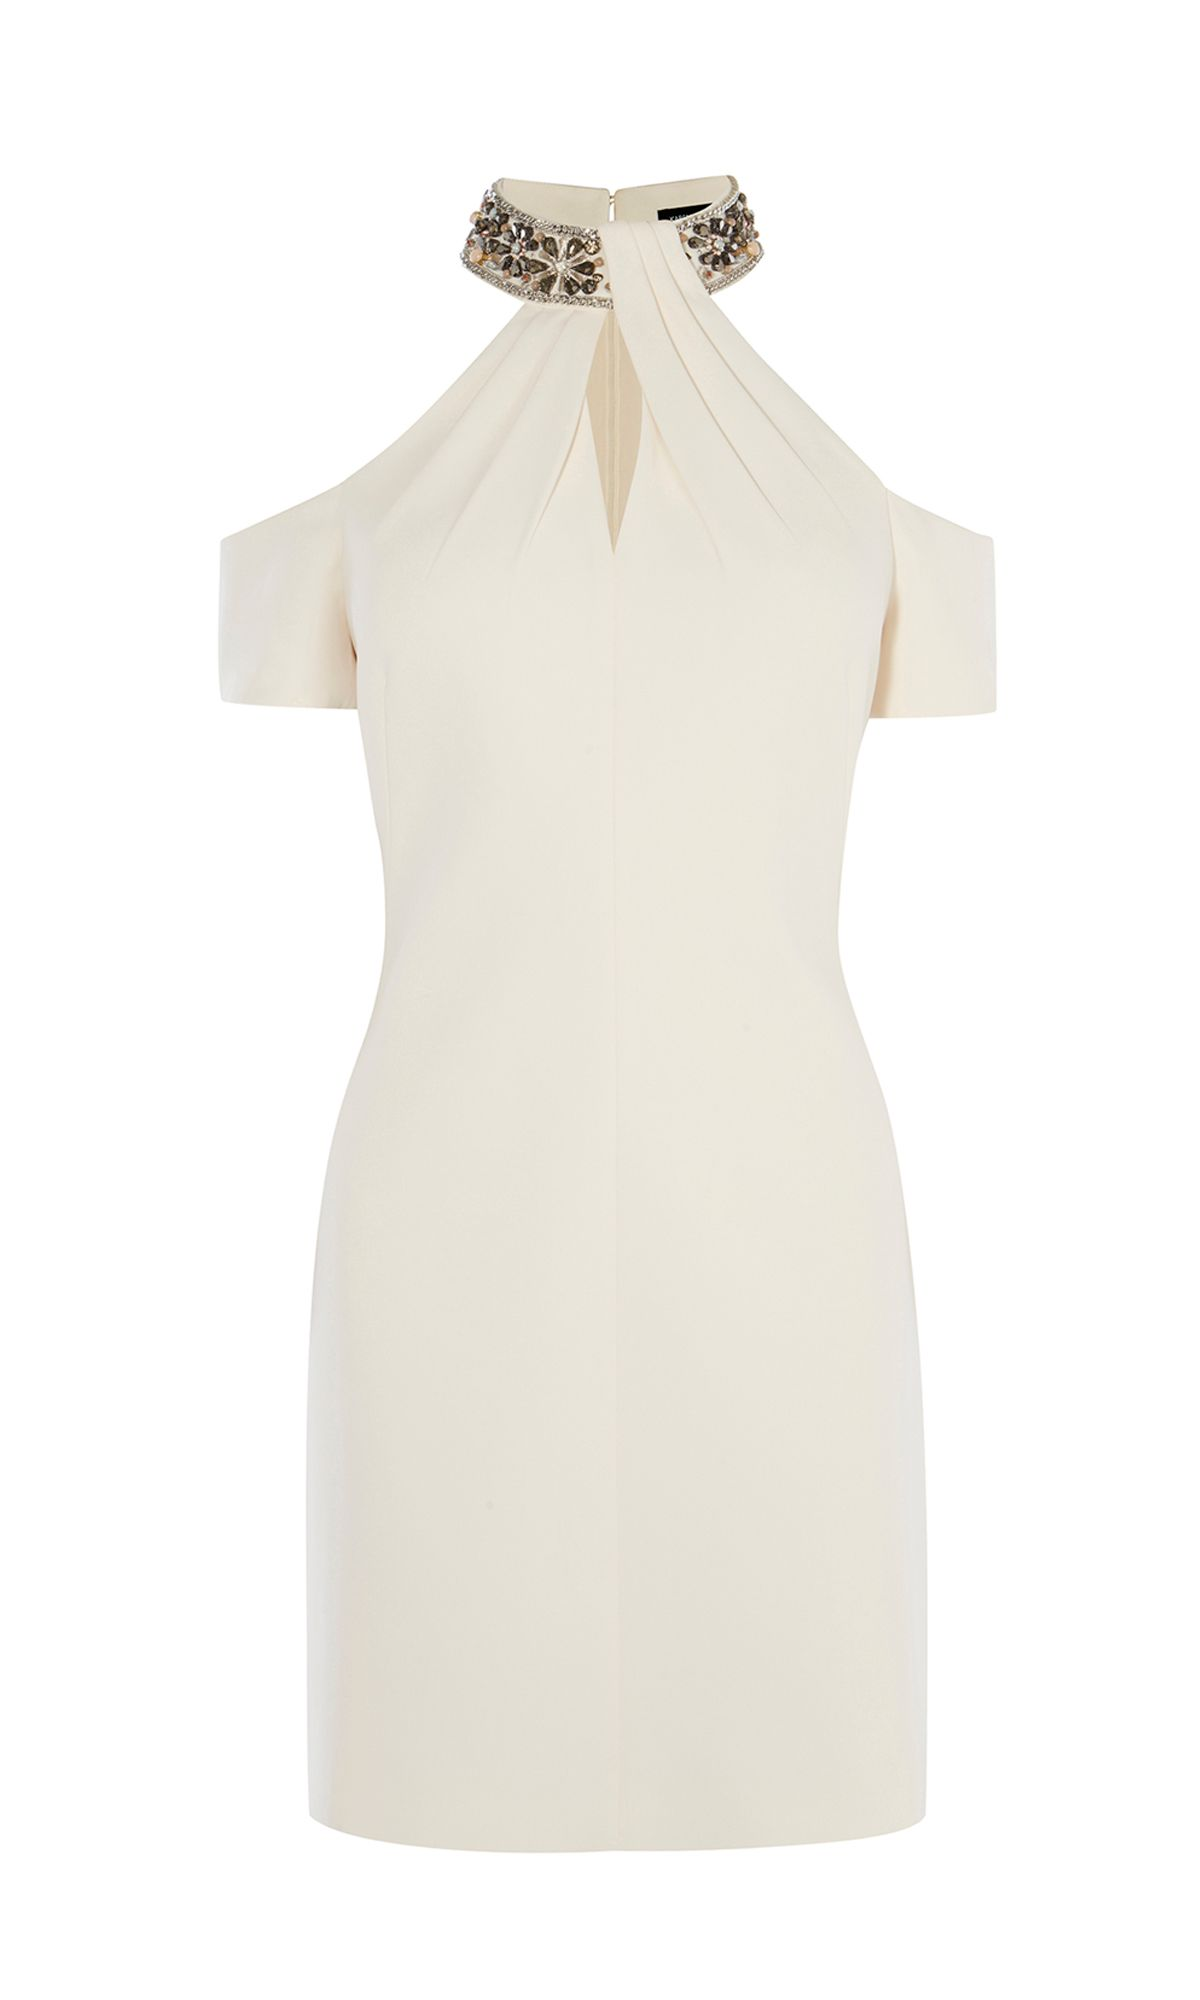 Karen Millen Nude Jewel Collar Dress, Nude